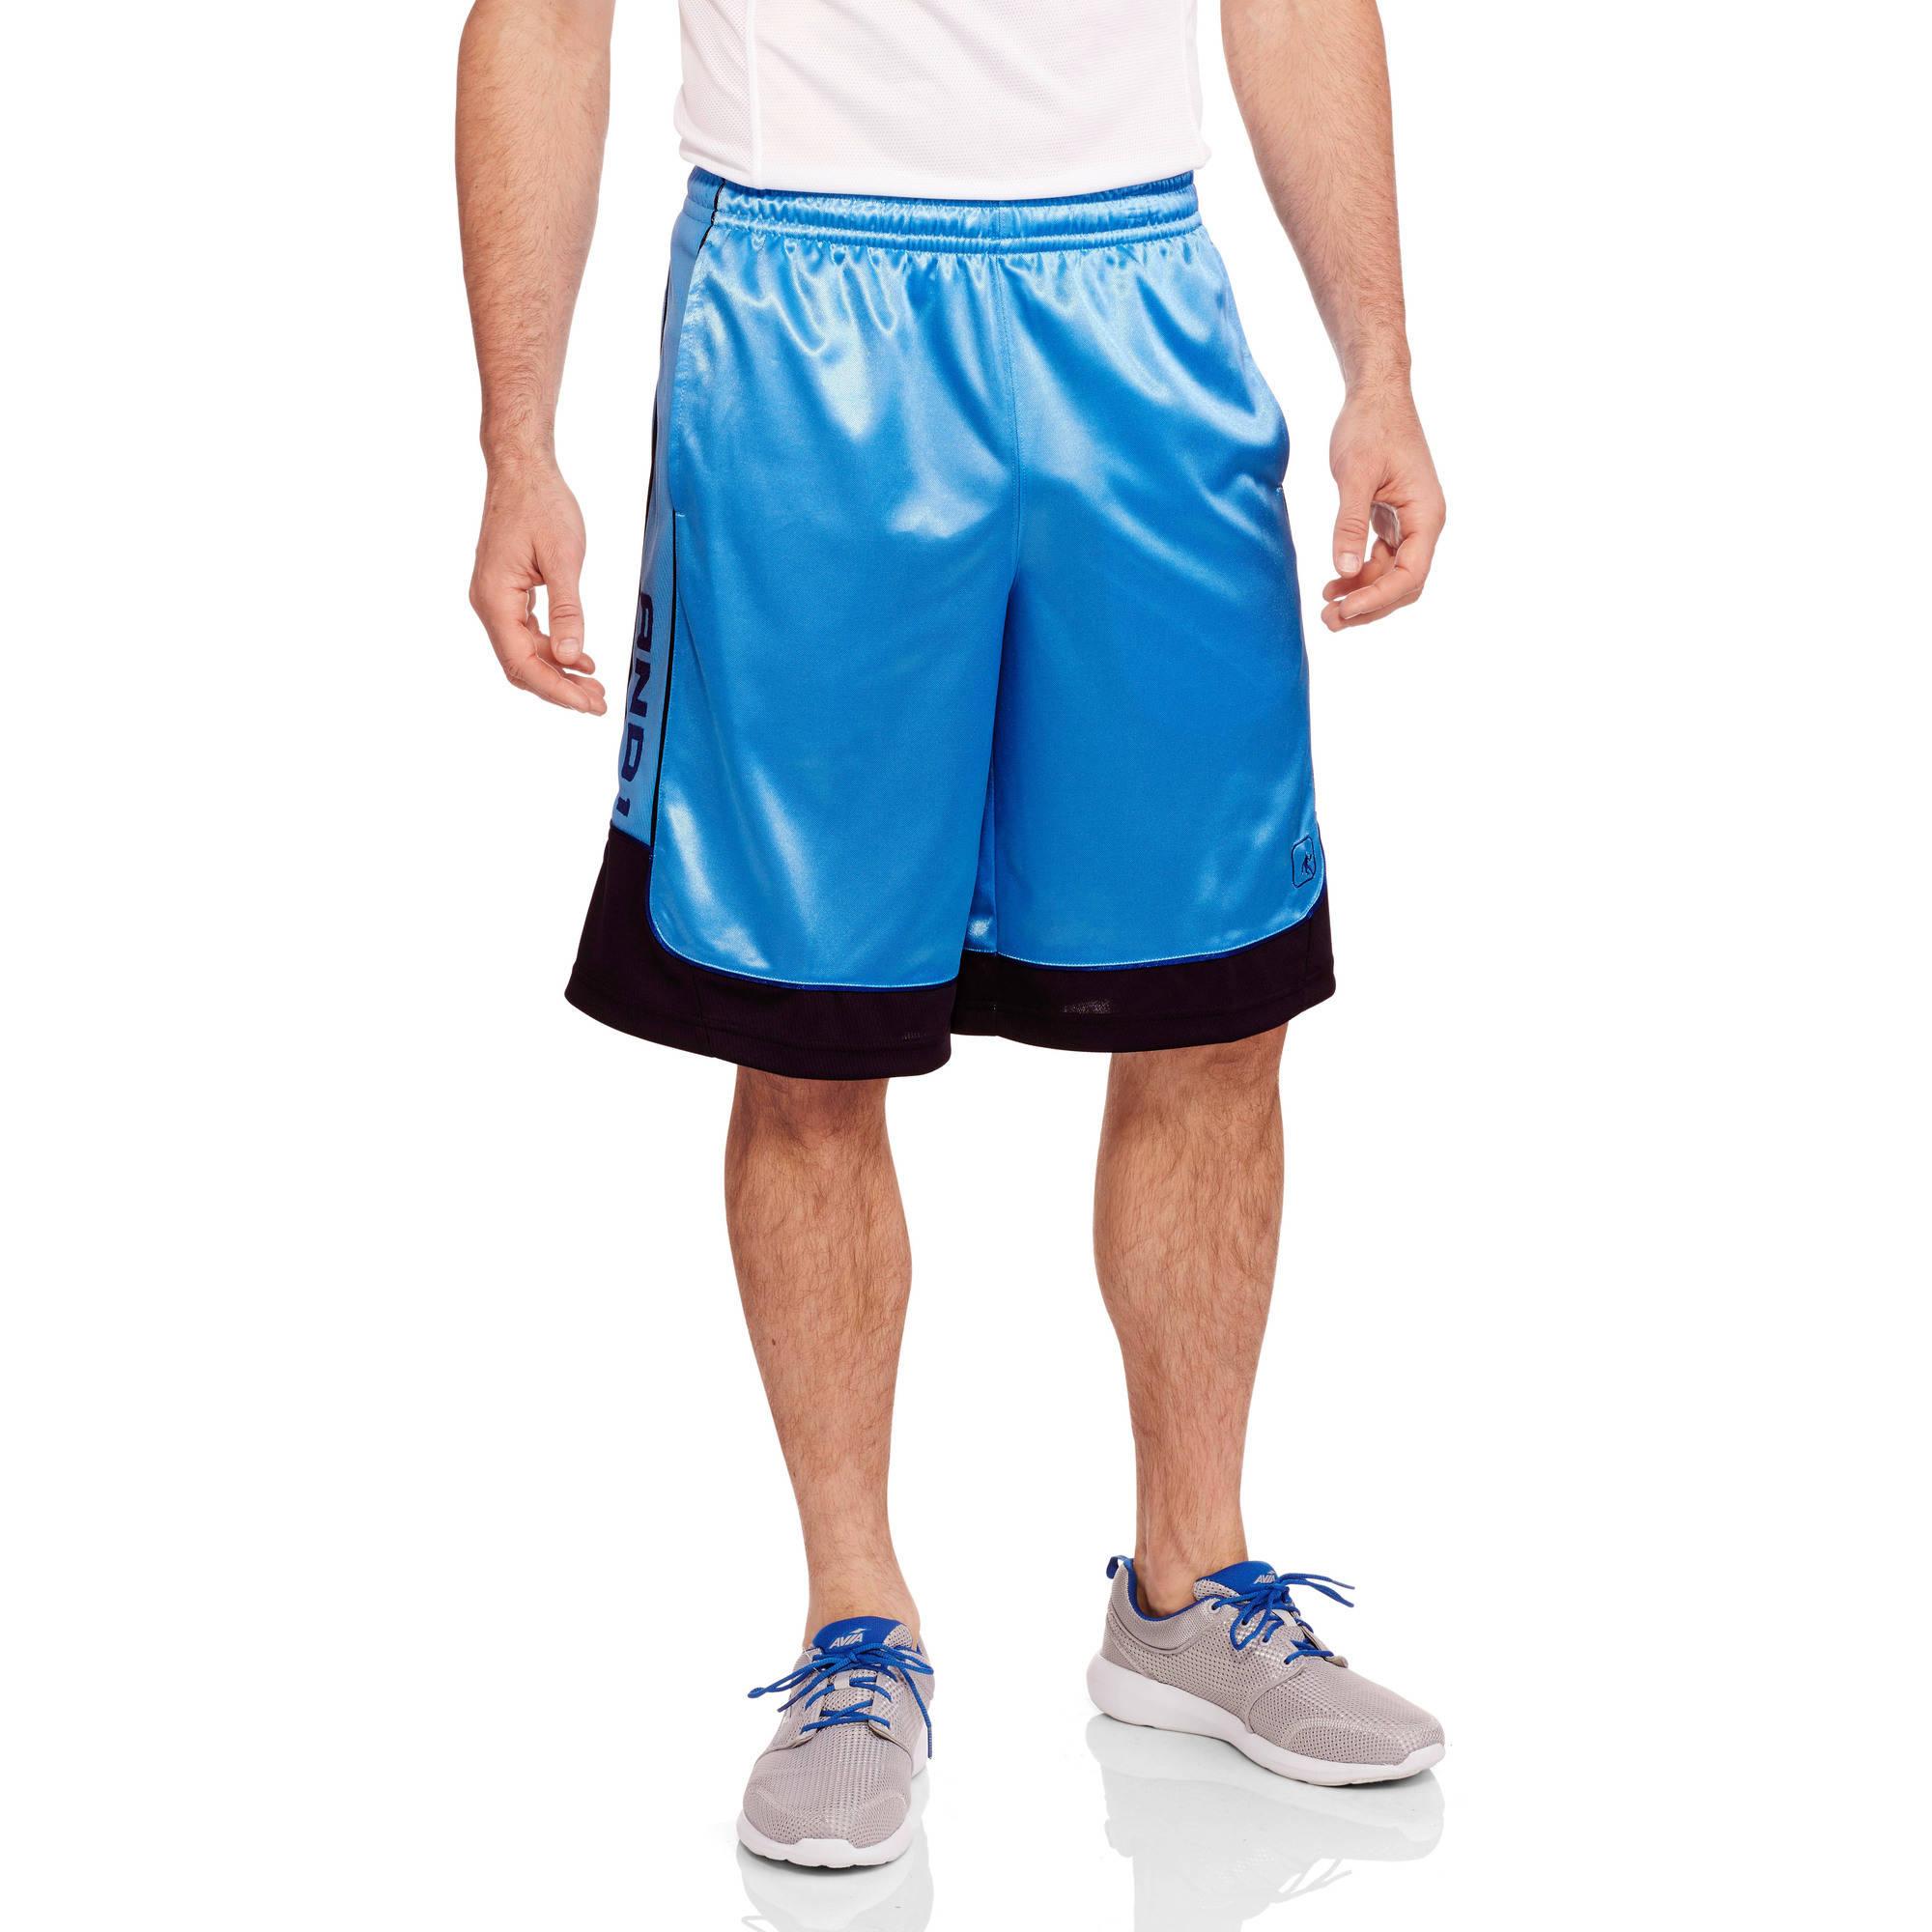 AND1 Big Men's Colorblock All Courts Basketball Short